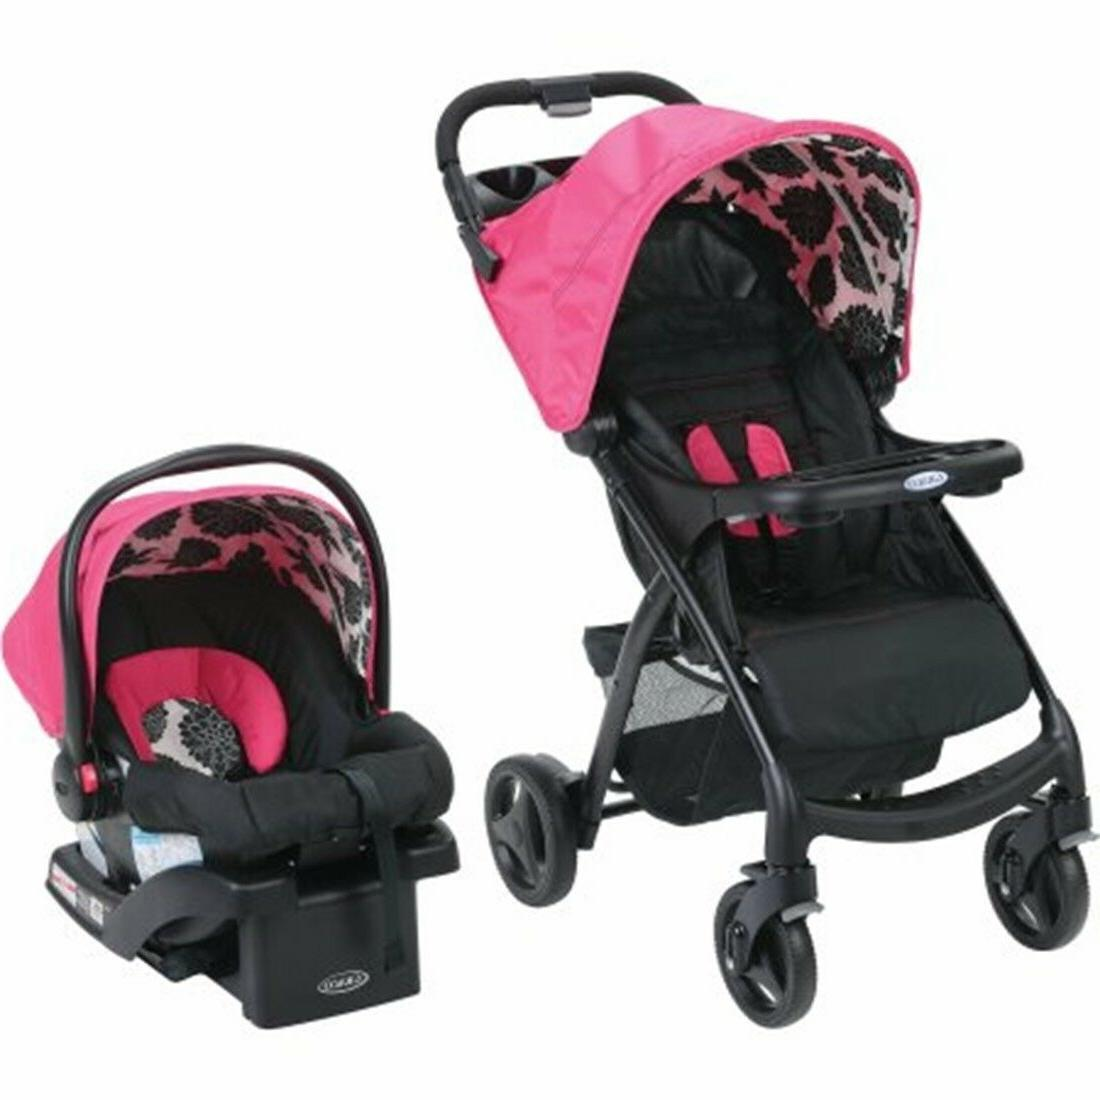 Graco Baby Stroller with Car Seat Infant Playard